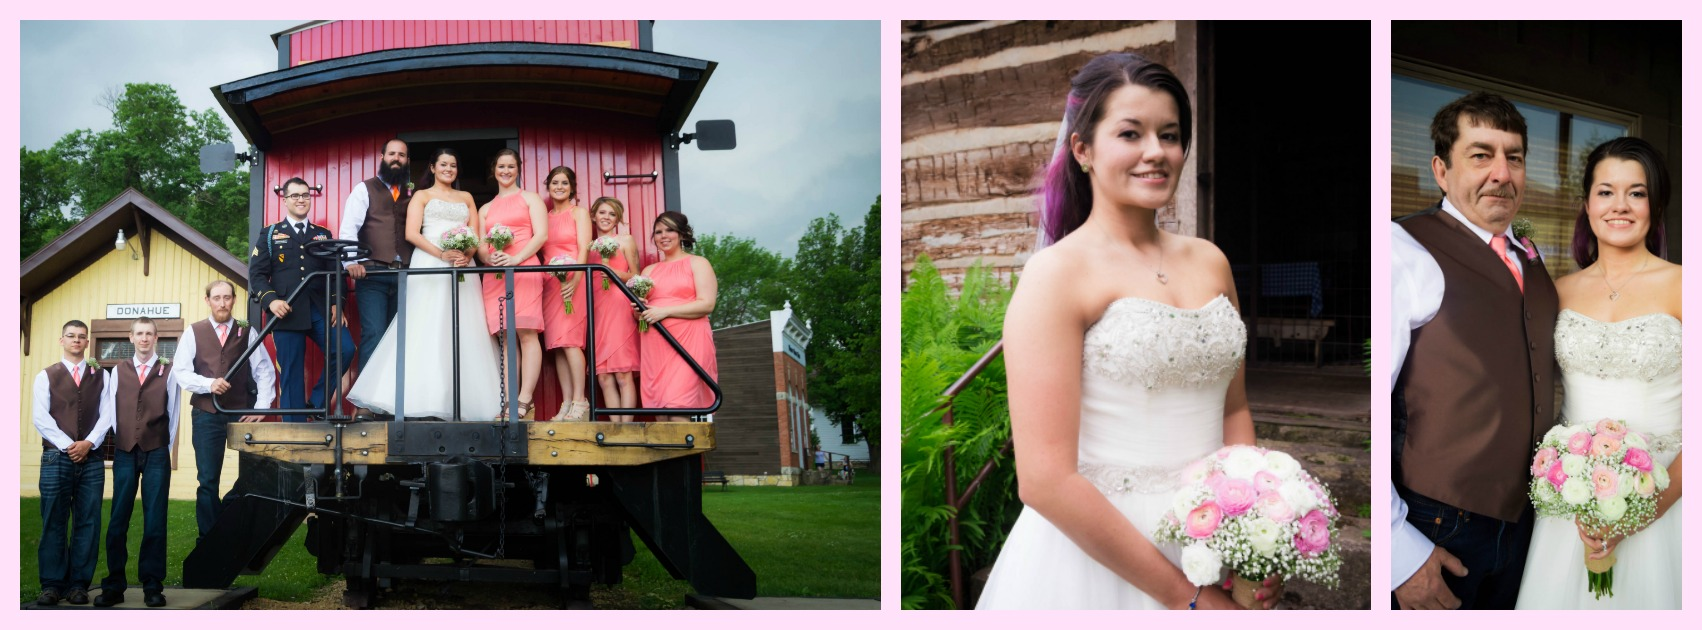 Images by Kelly Cook Photography